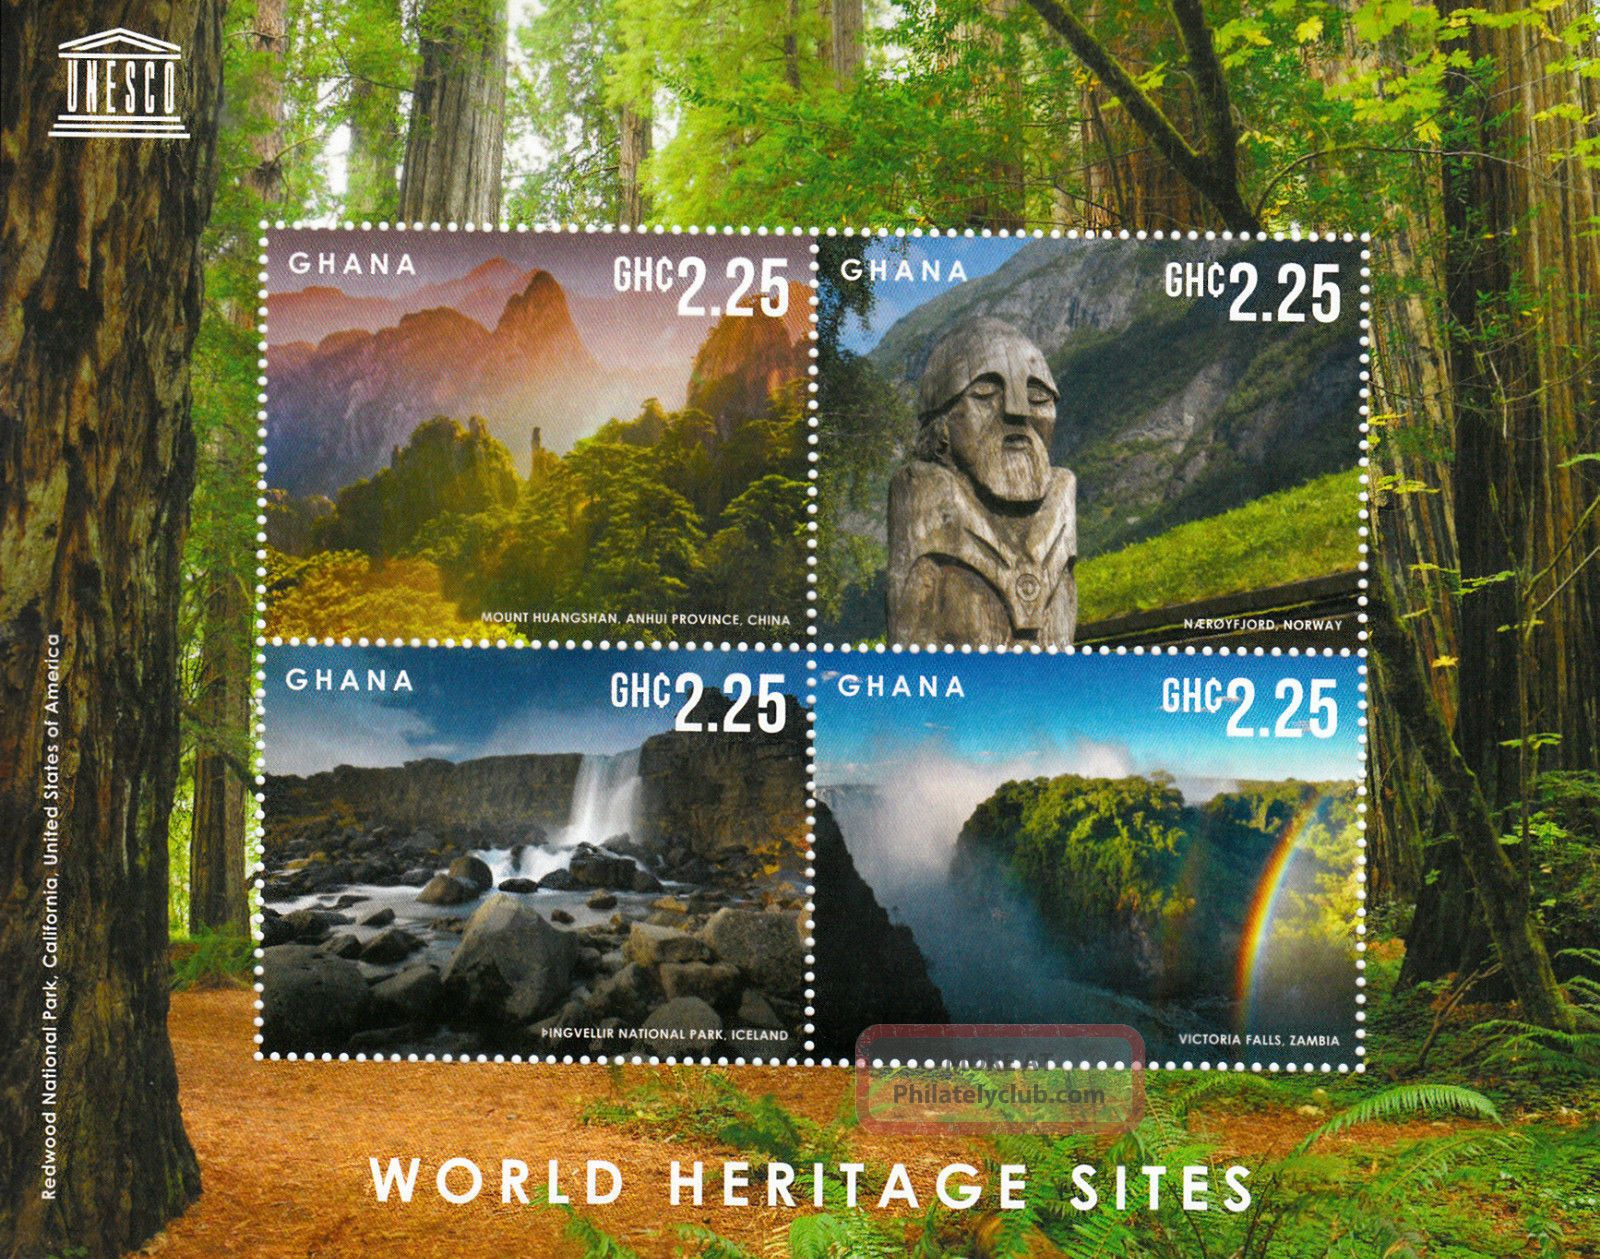 Ghana 2013 Unesco World Heritage Site I 4v M/s Victoria Falls Redwood Park Africa photo